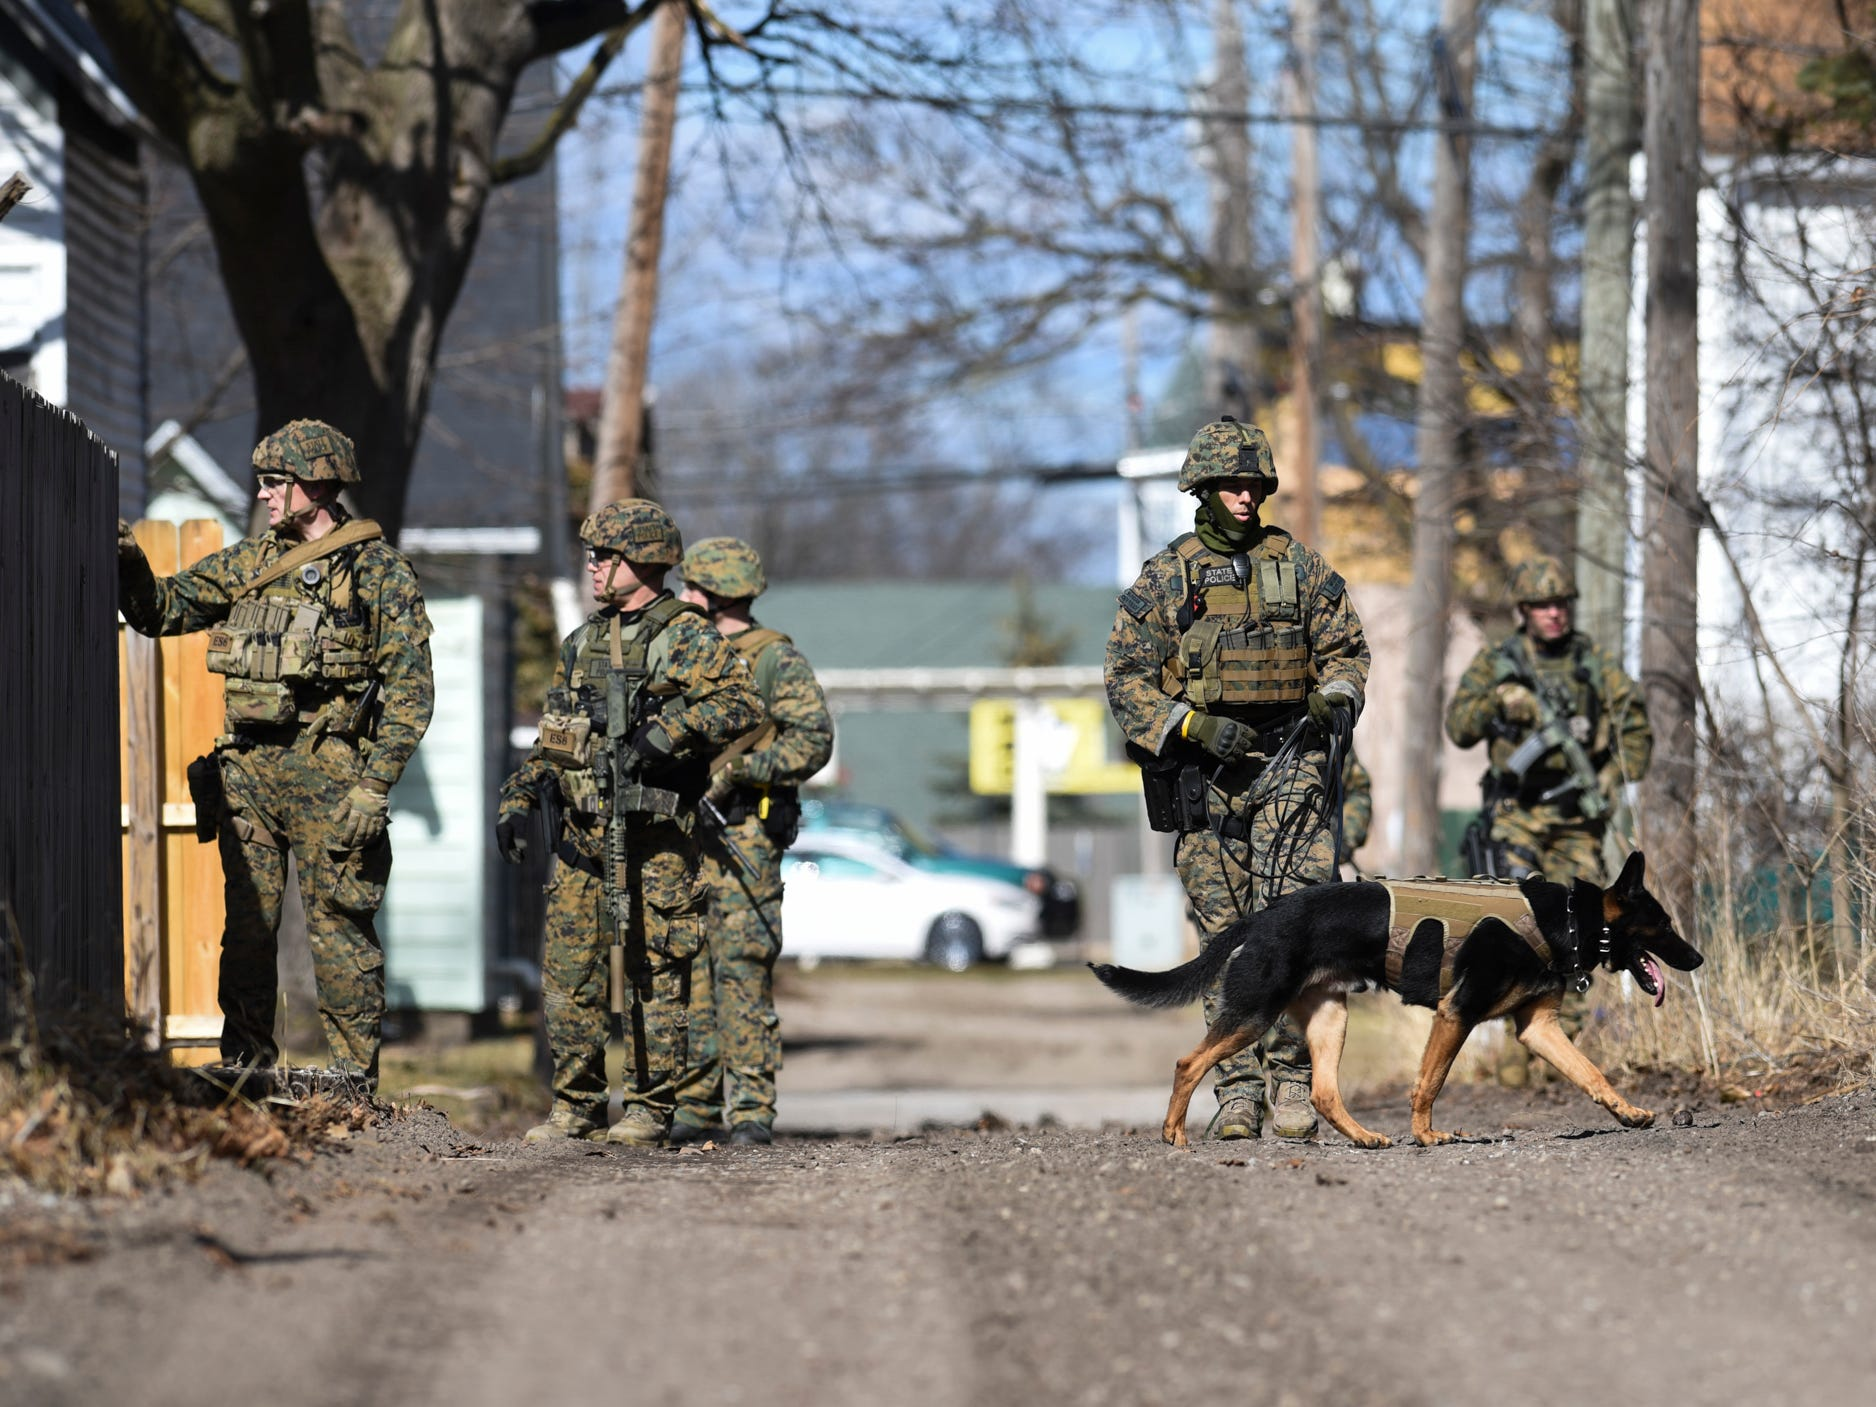 Members of the Michigan State Police ES (Emergency Support) team search neighborhoods adjacent to the Central Michigan University campus Friday, March 2, 2018, for James Davis Jr., 19, who reportedly shot and killed his parents in a dorm on campus earlier in the morning.  After a nearly daylong manhunt, the man was taken into custody early Saturday morning.